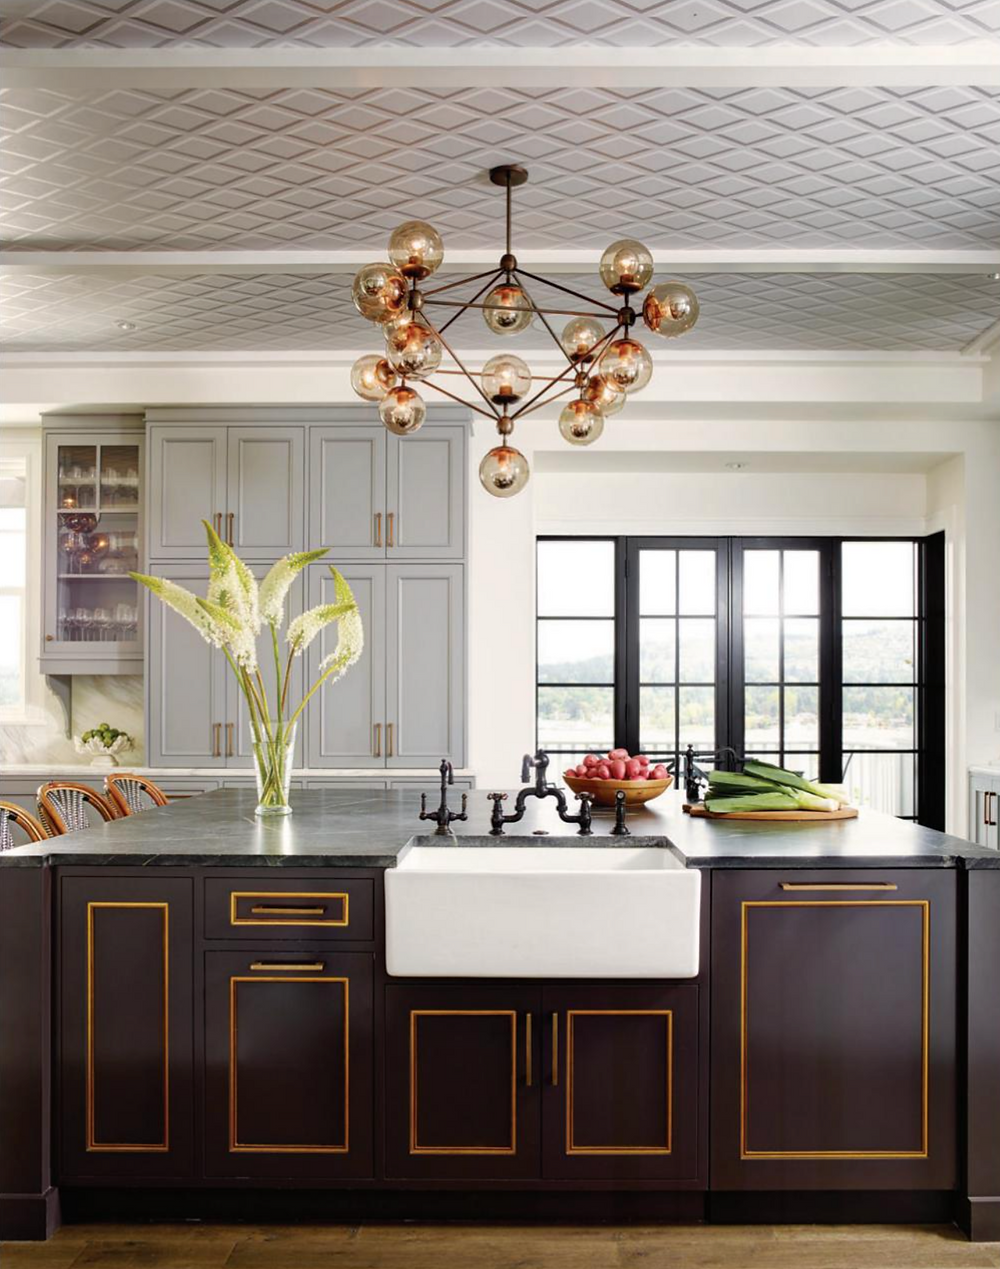 kitchen with wallpaper on ceiling, globe chandelier, black island with apron sink, gray cabinet, bronze